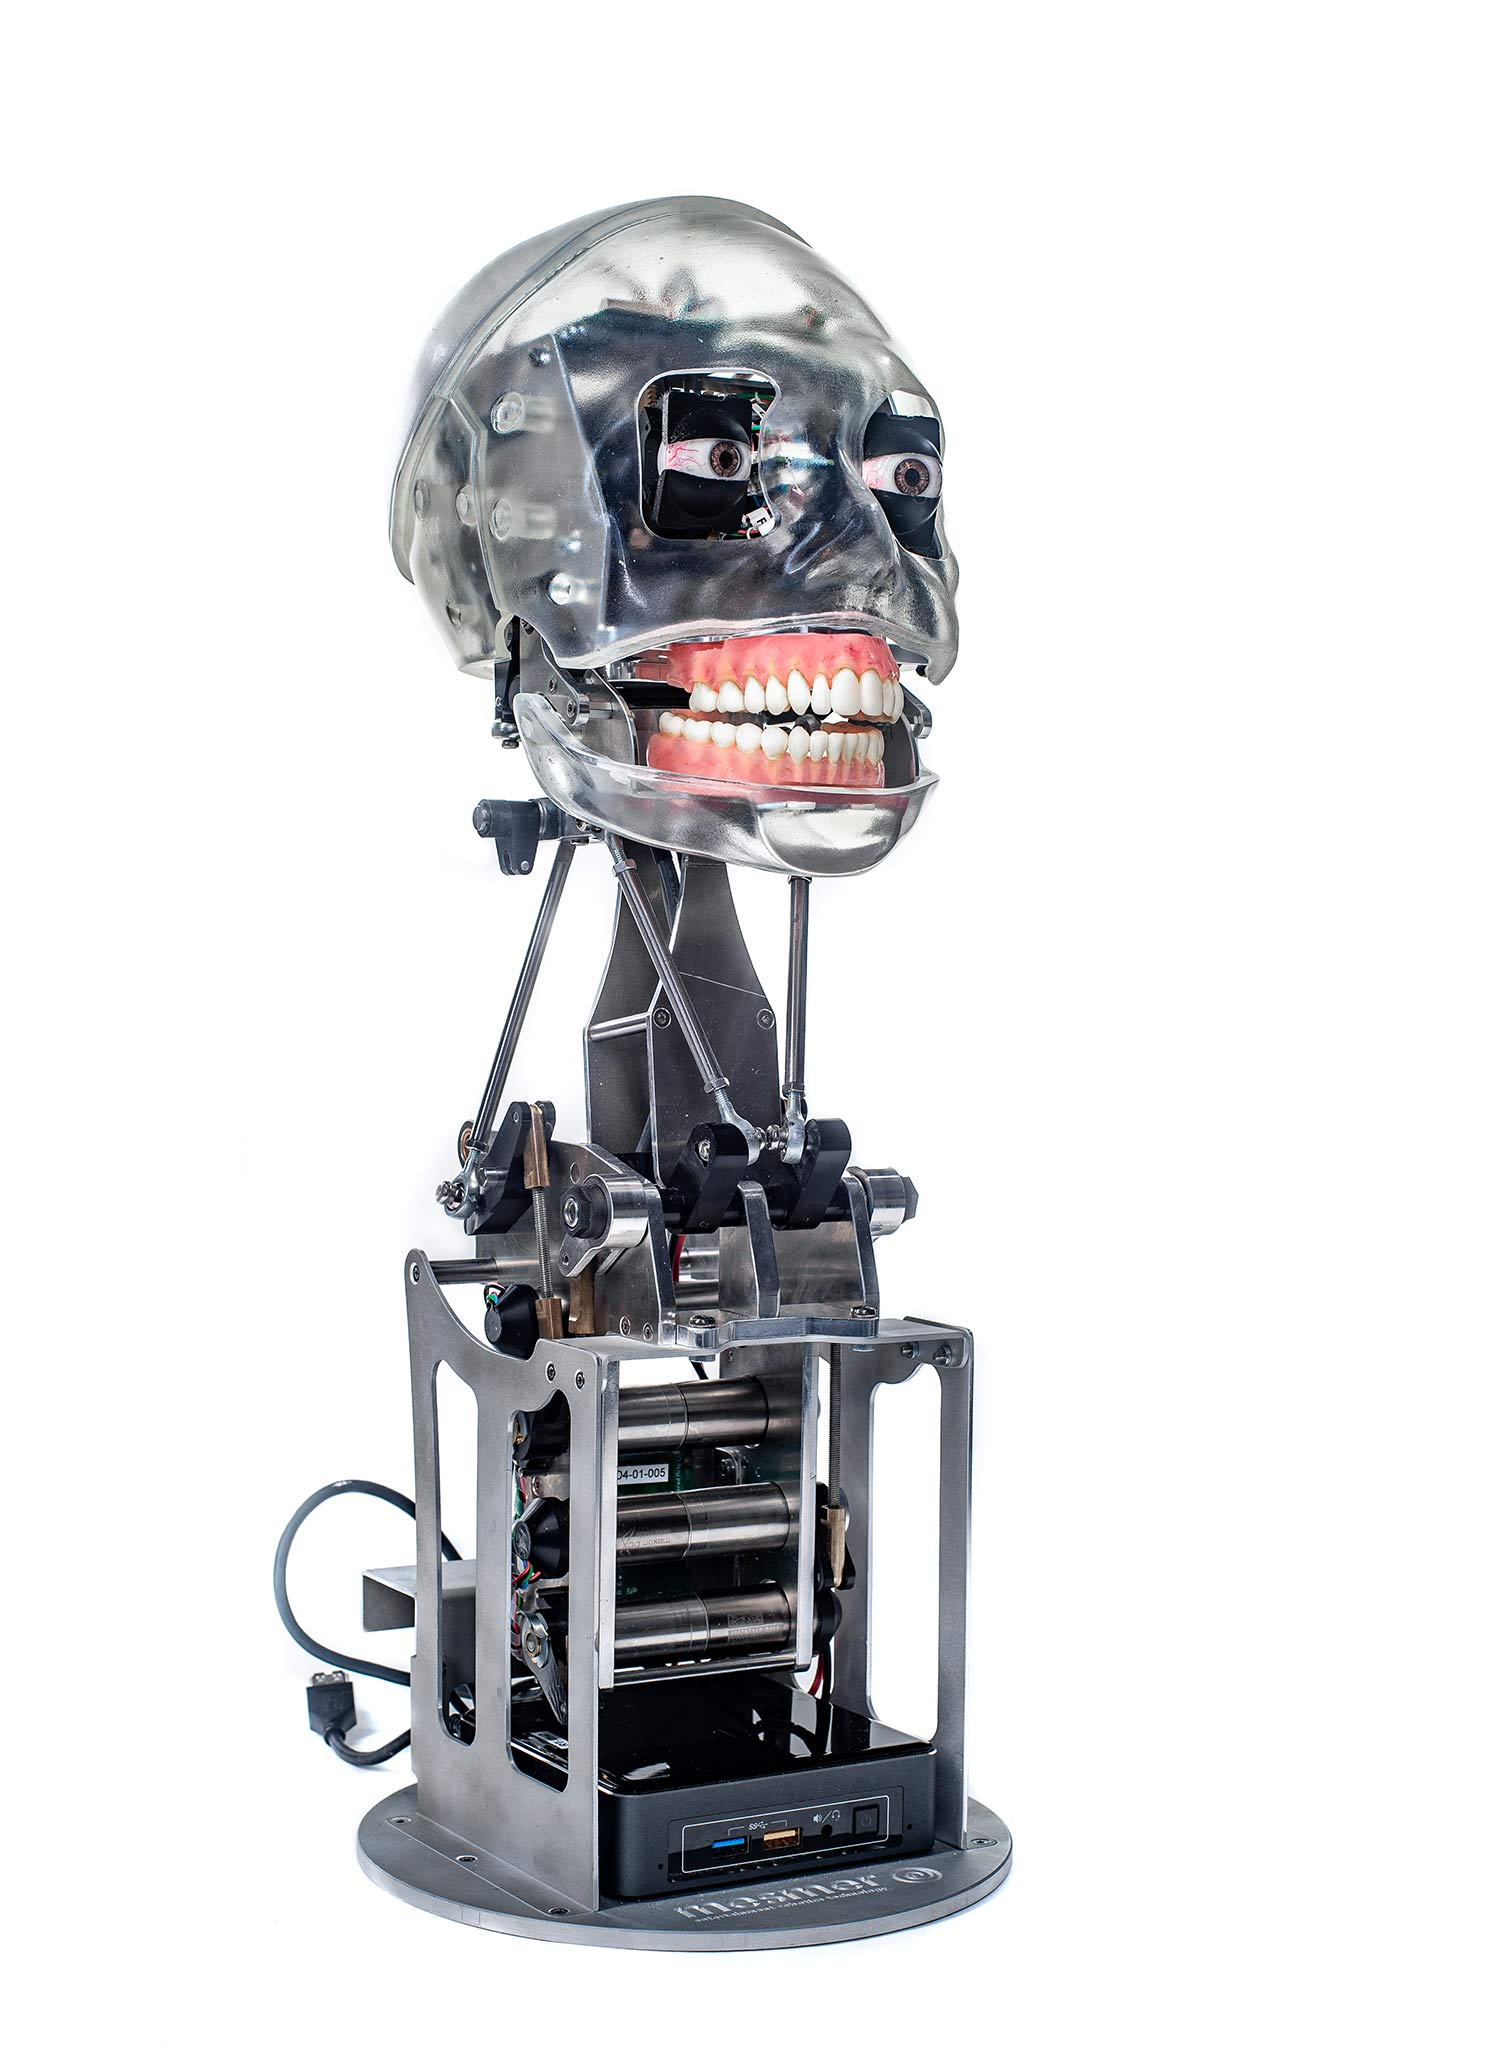 Robot Rental UK - Melvin Mesmer Robot for Hire